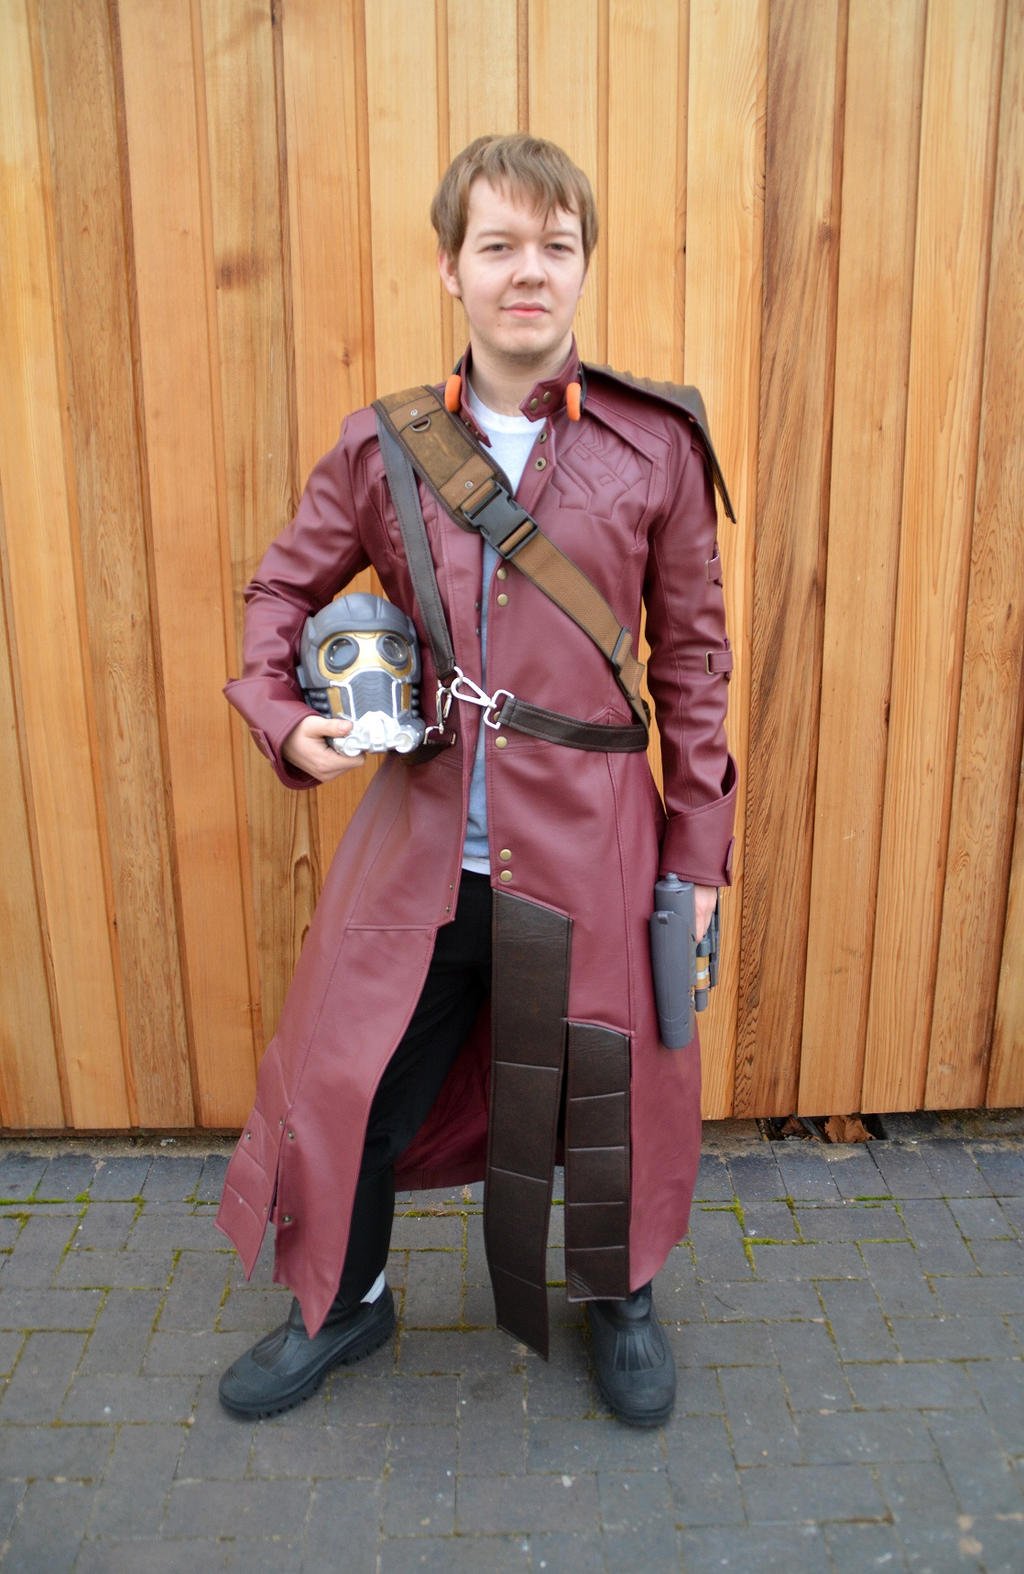 Star lord cosplay 1 by masimage on deviantart